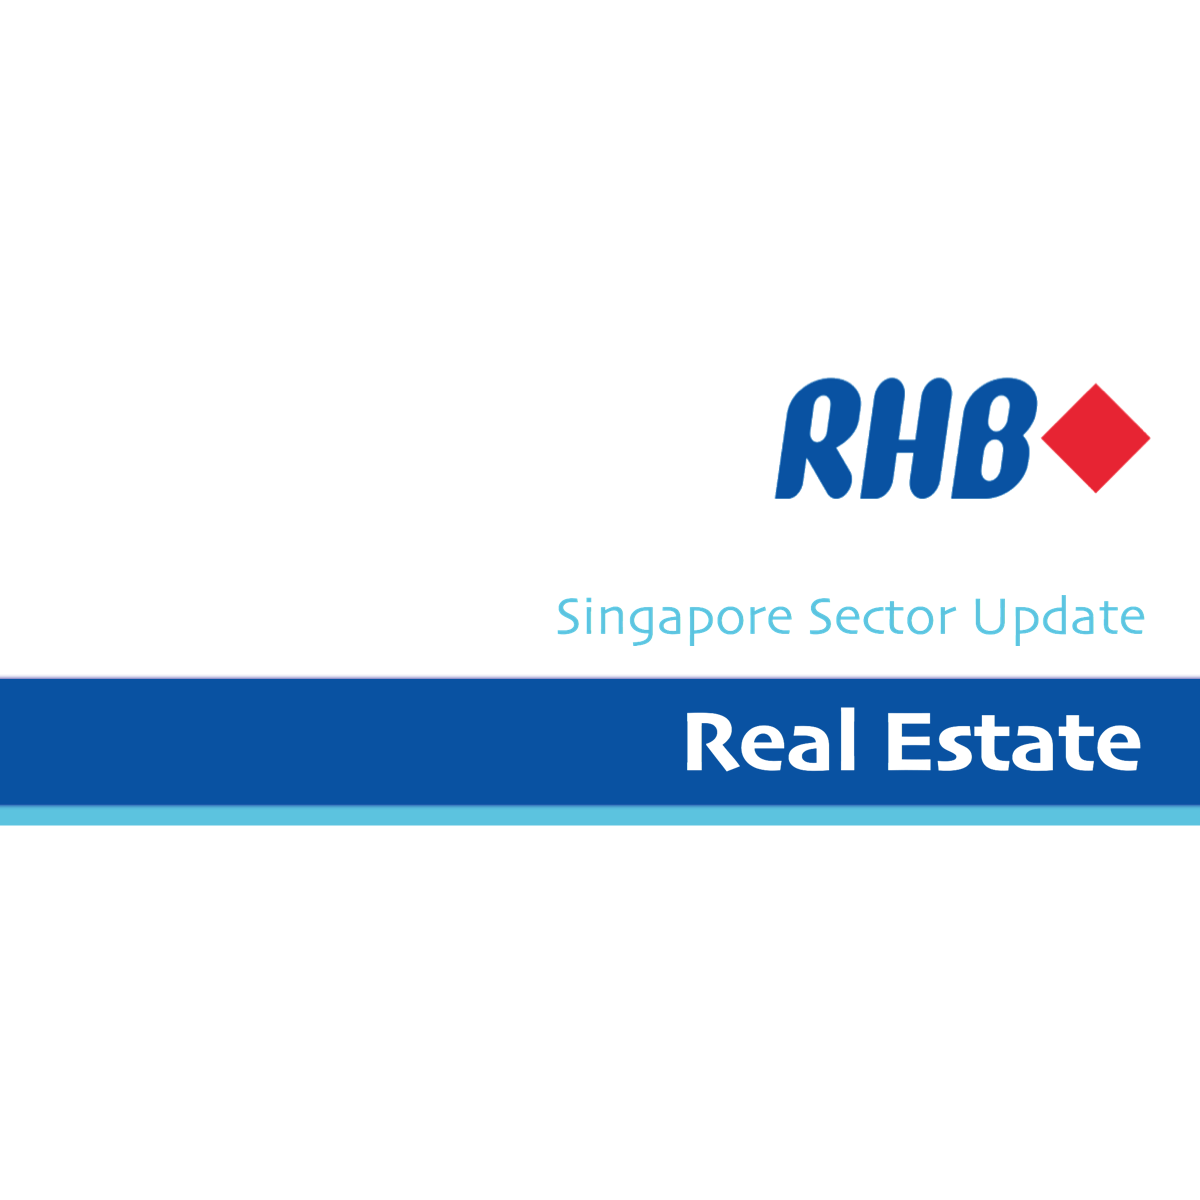 Real Estate - RHB Invest 2018-04-10: Are We Nearing The Peak Of The En Bloc Cycle?